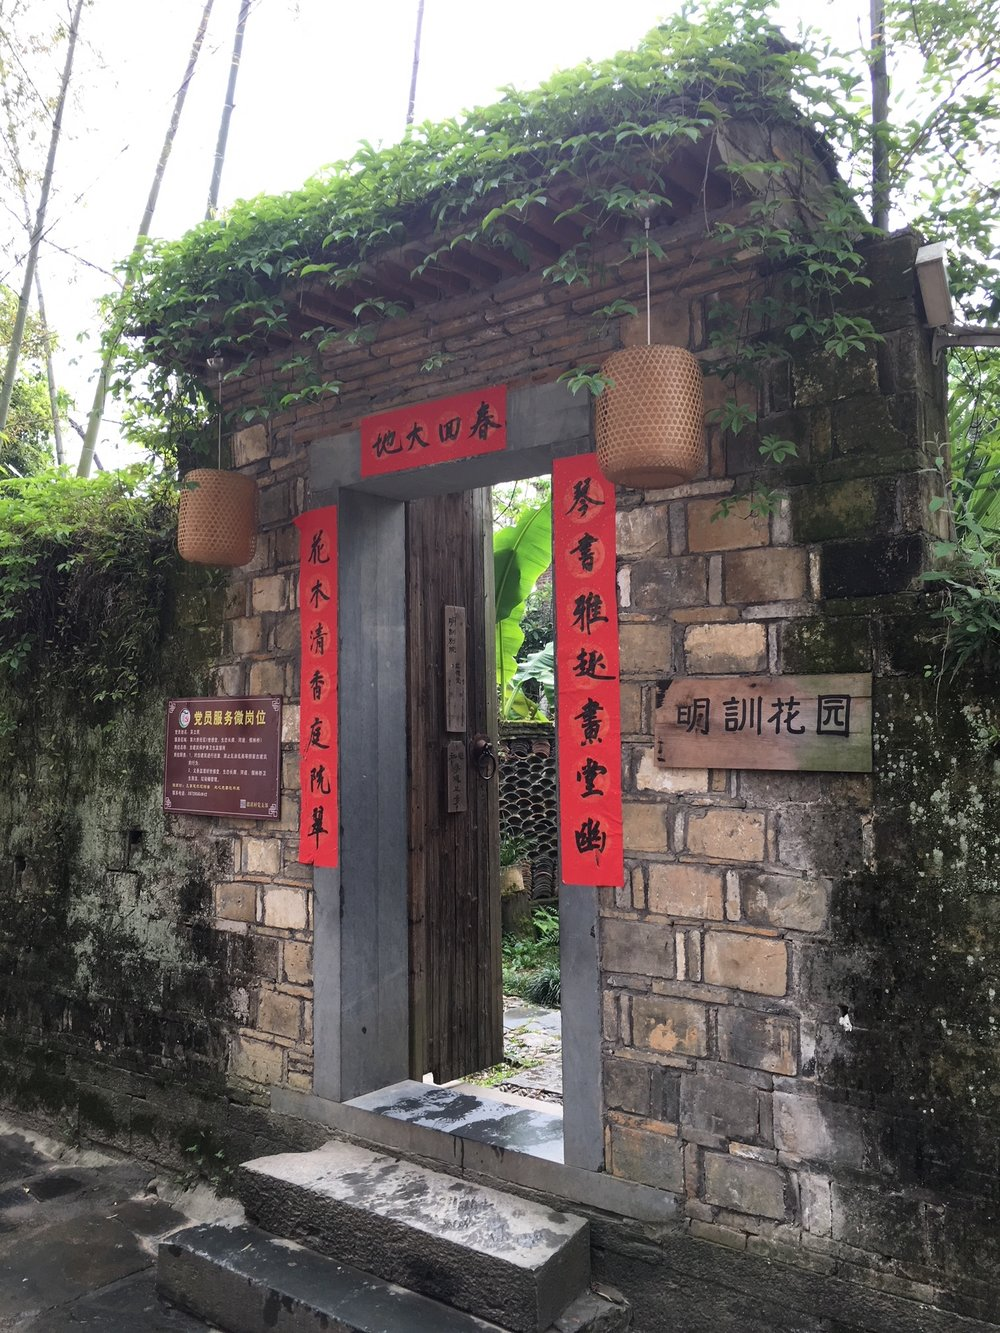 Entrance of my stay―Ming Xun Garden